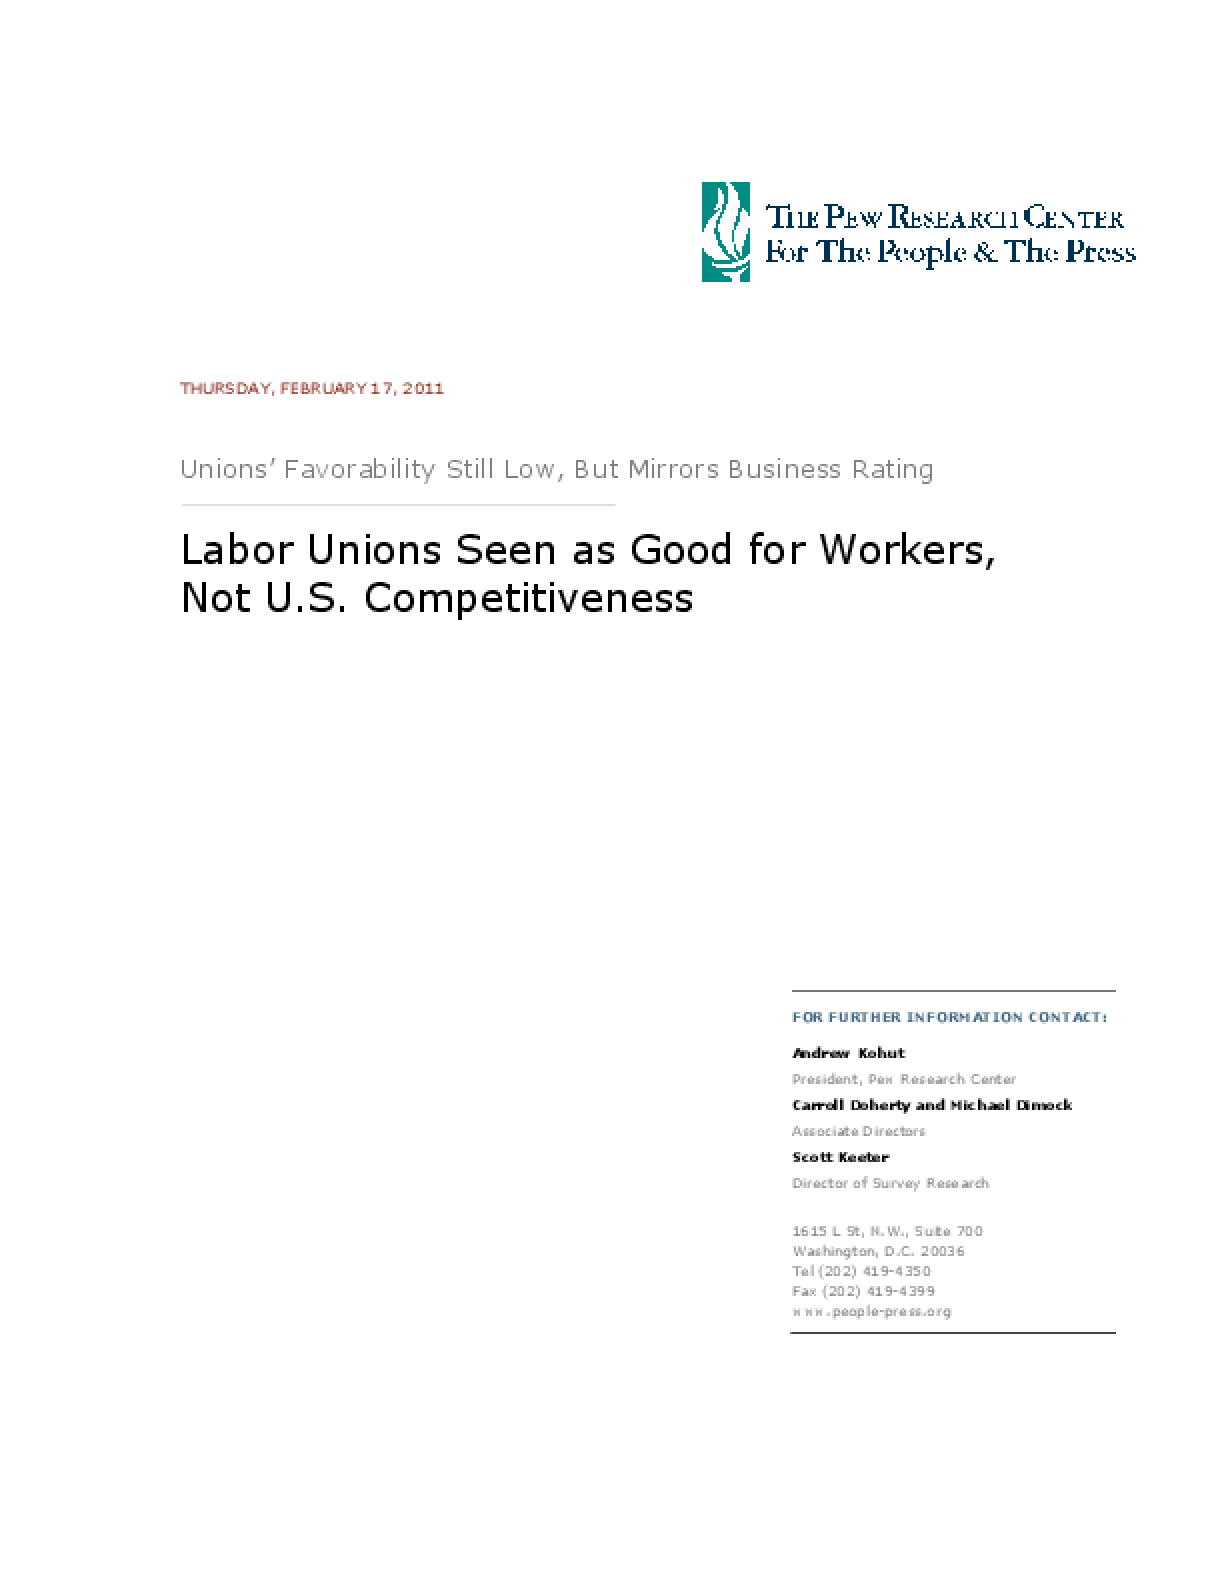 Labor Unions Seen as Good for Workers, Not U.S. Competitiveness